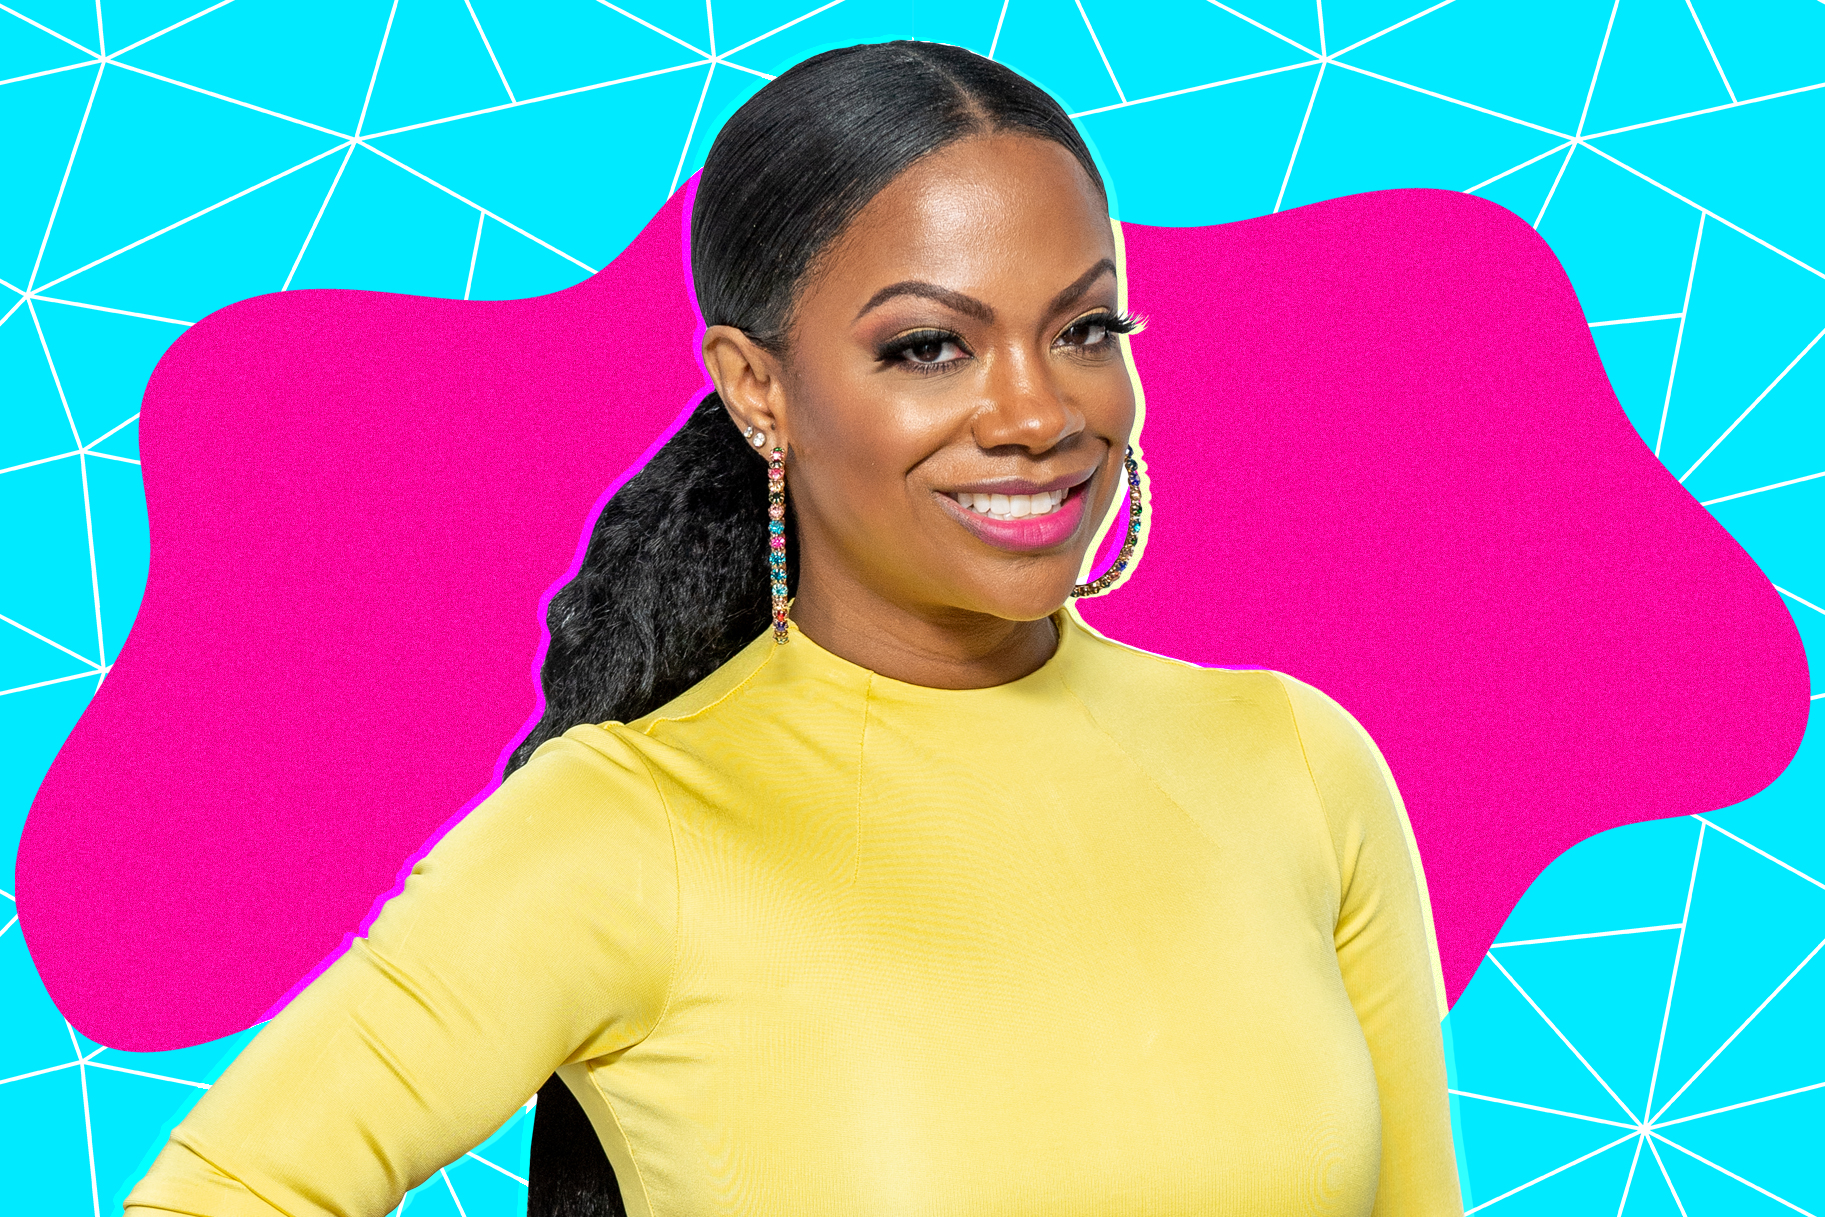 """kandi-burruss-is-pretty-in-pink-fans-say-she-is-twinning-with-riley-burruss"""